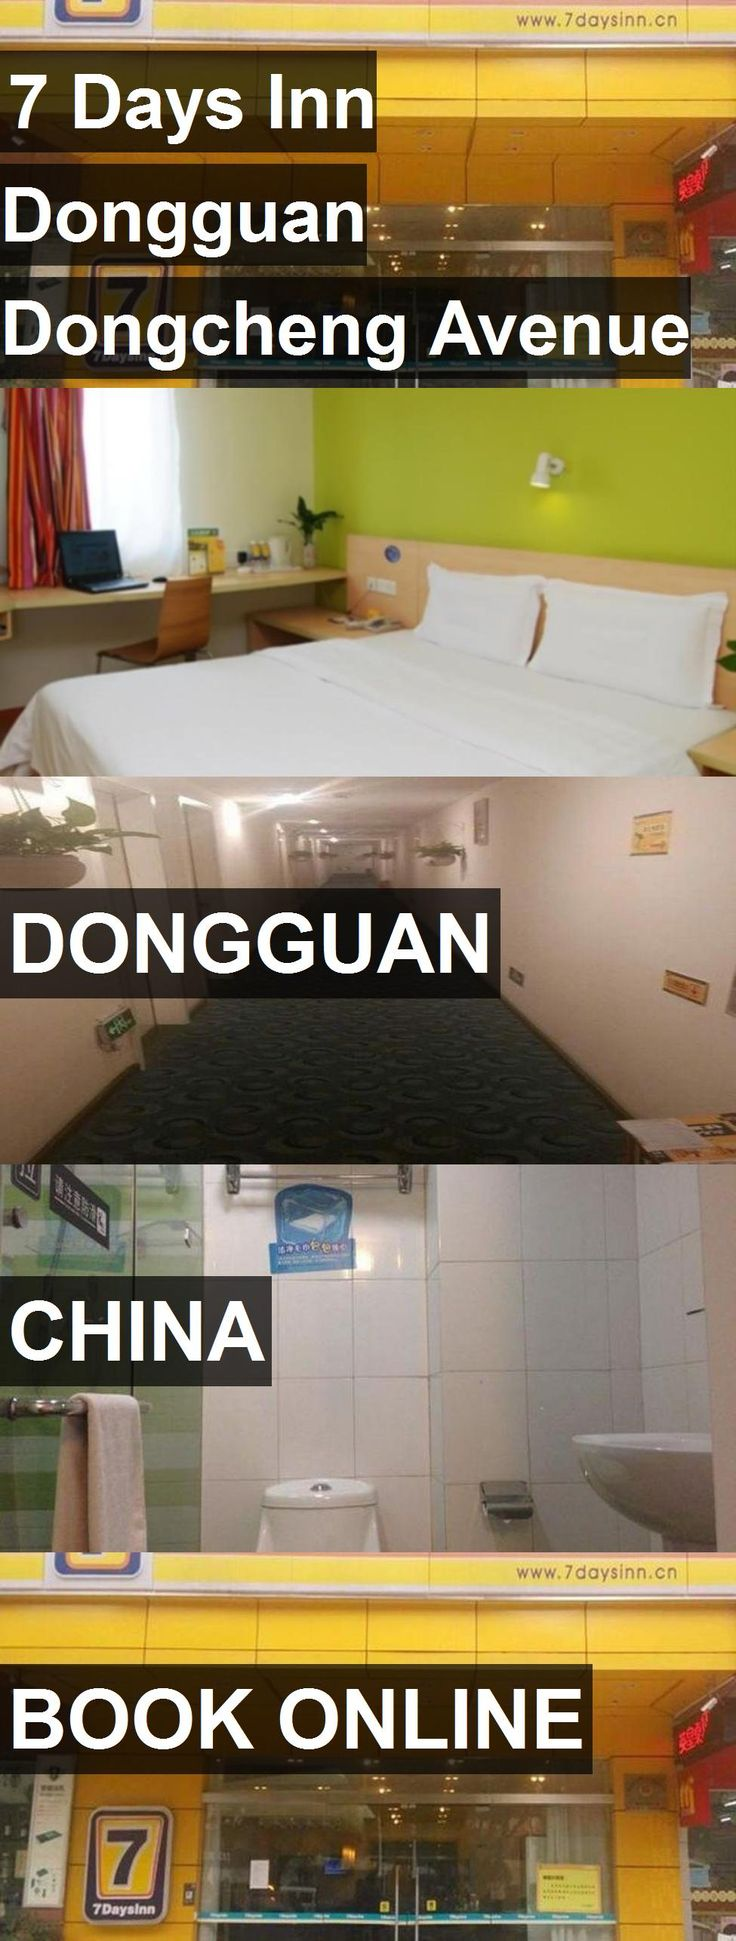 Hotel 7 Days Inn Dongguan Dongcheng Avenue Pedestrian Street in Dongguan, China. For more information, photos, reviews and best prices please follow the link. #China #Dongguan #travel #vacation #hotel